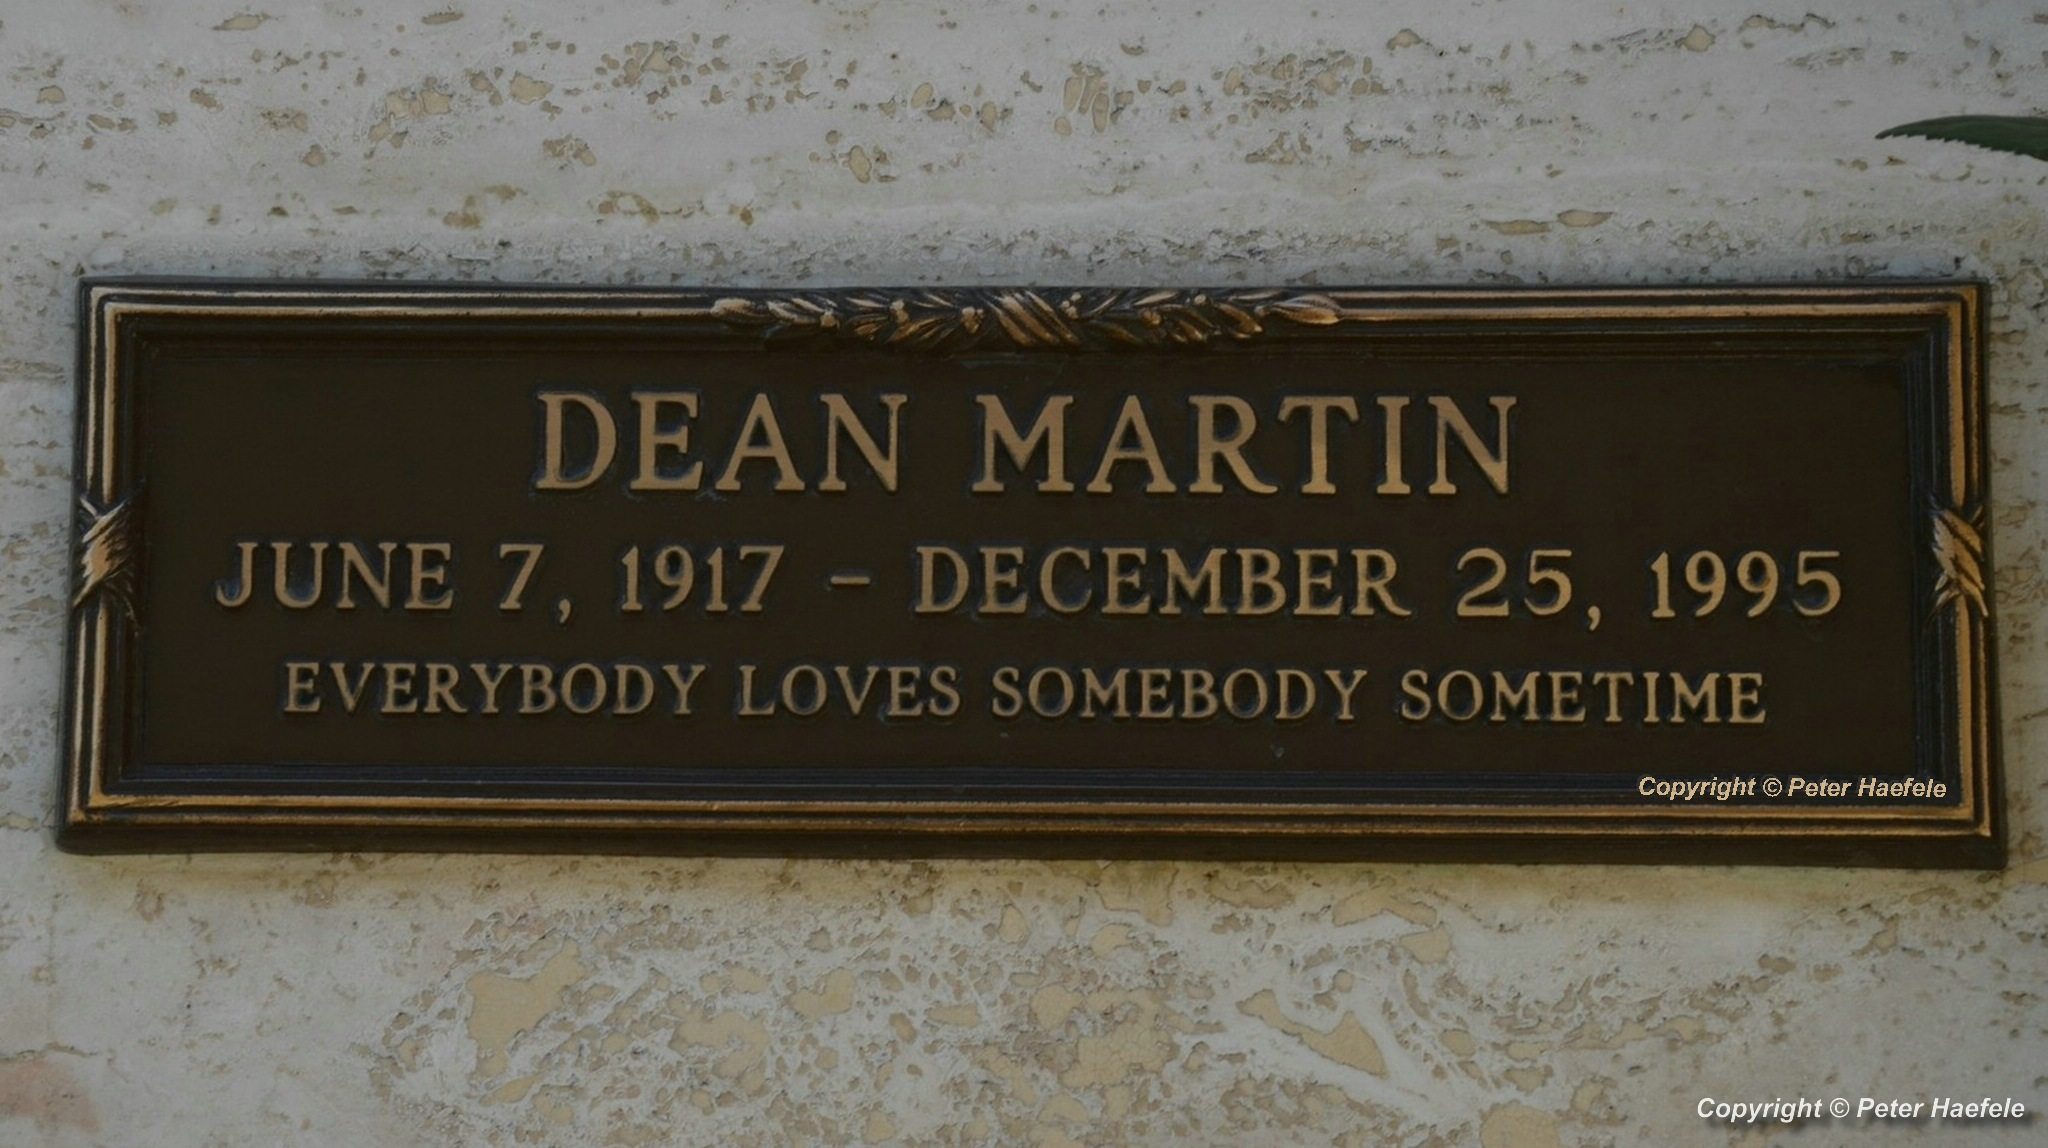 Roadtrip USA - Westwood Village Memorial Park Cemetery - Grave of Dean Martin